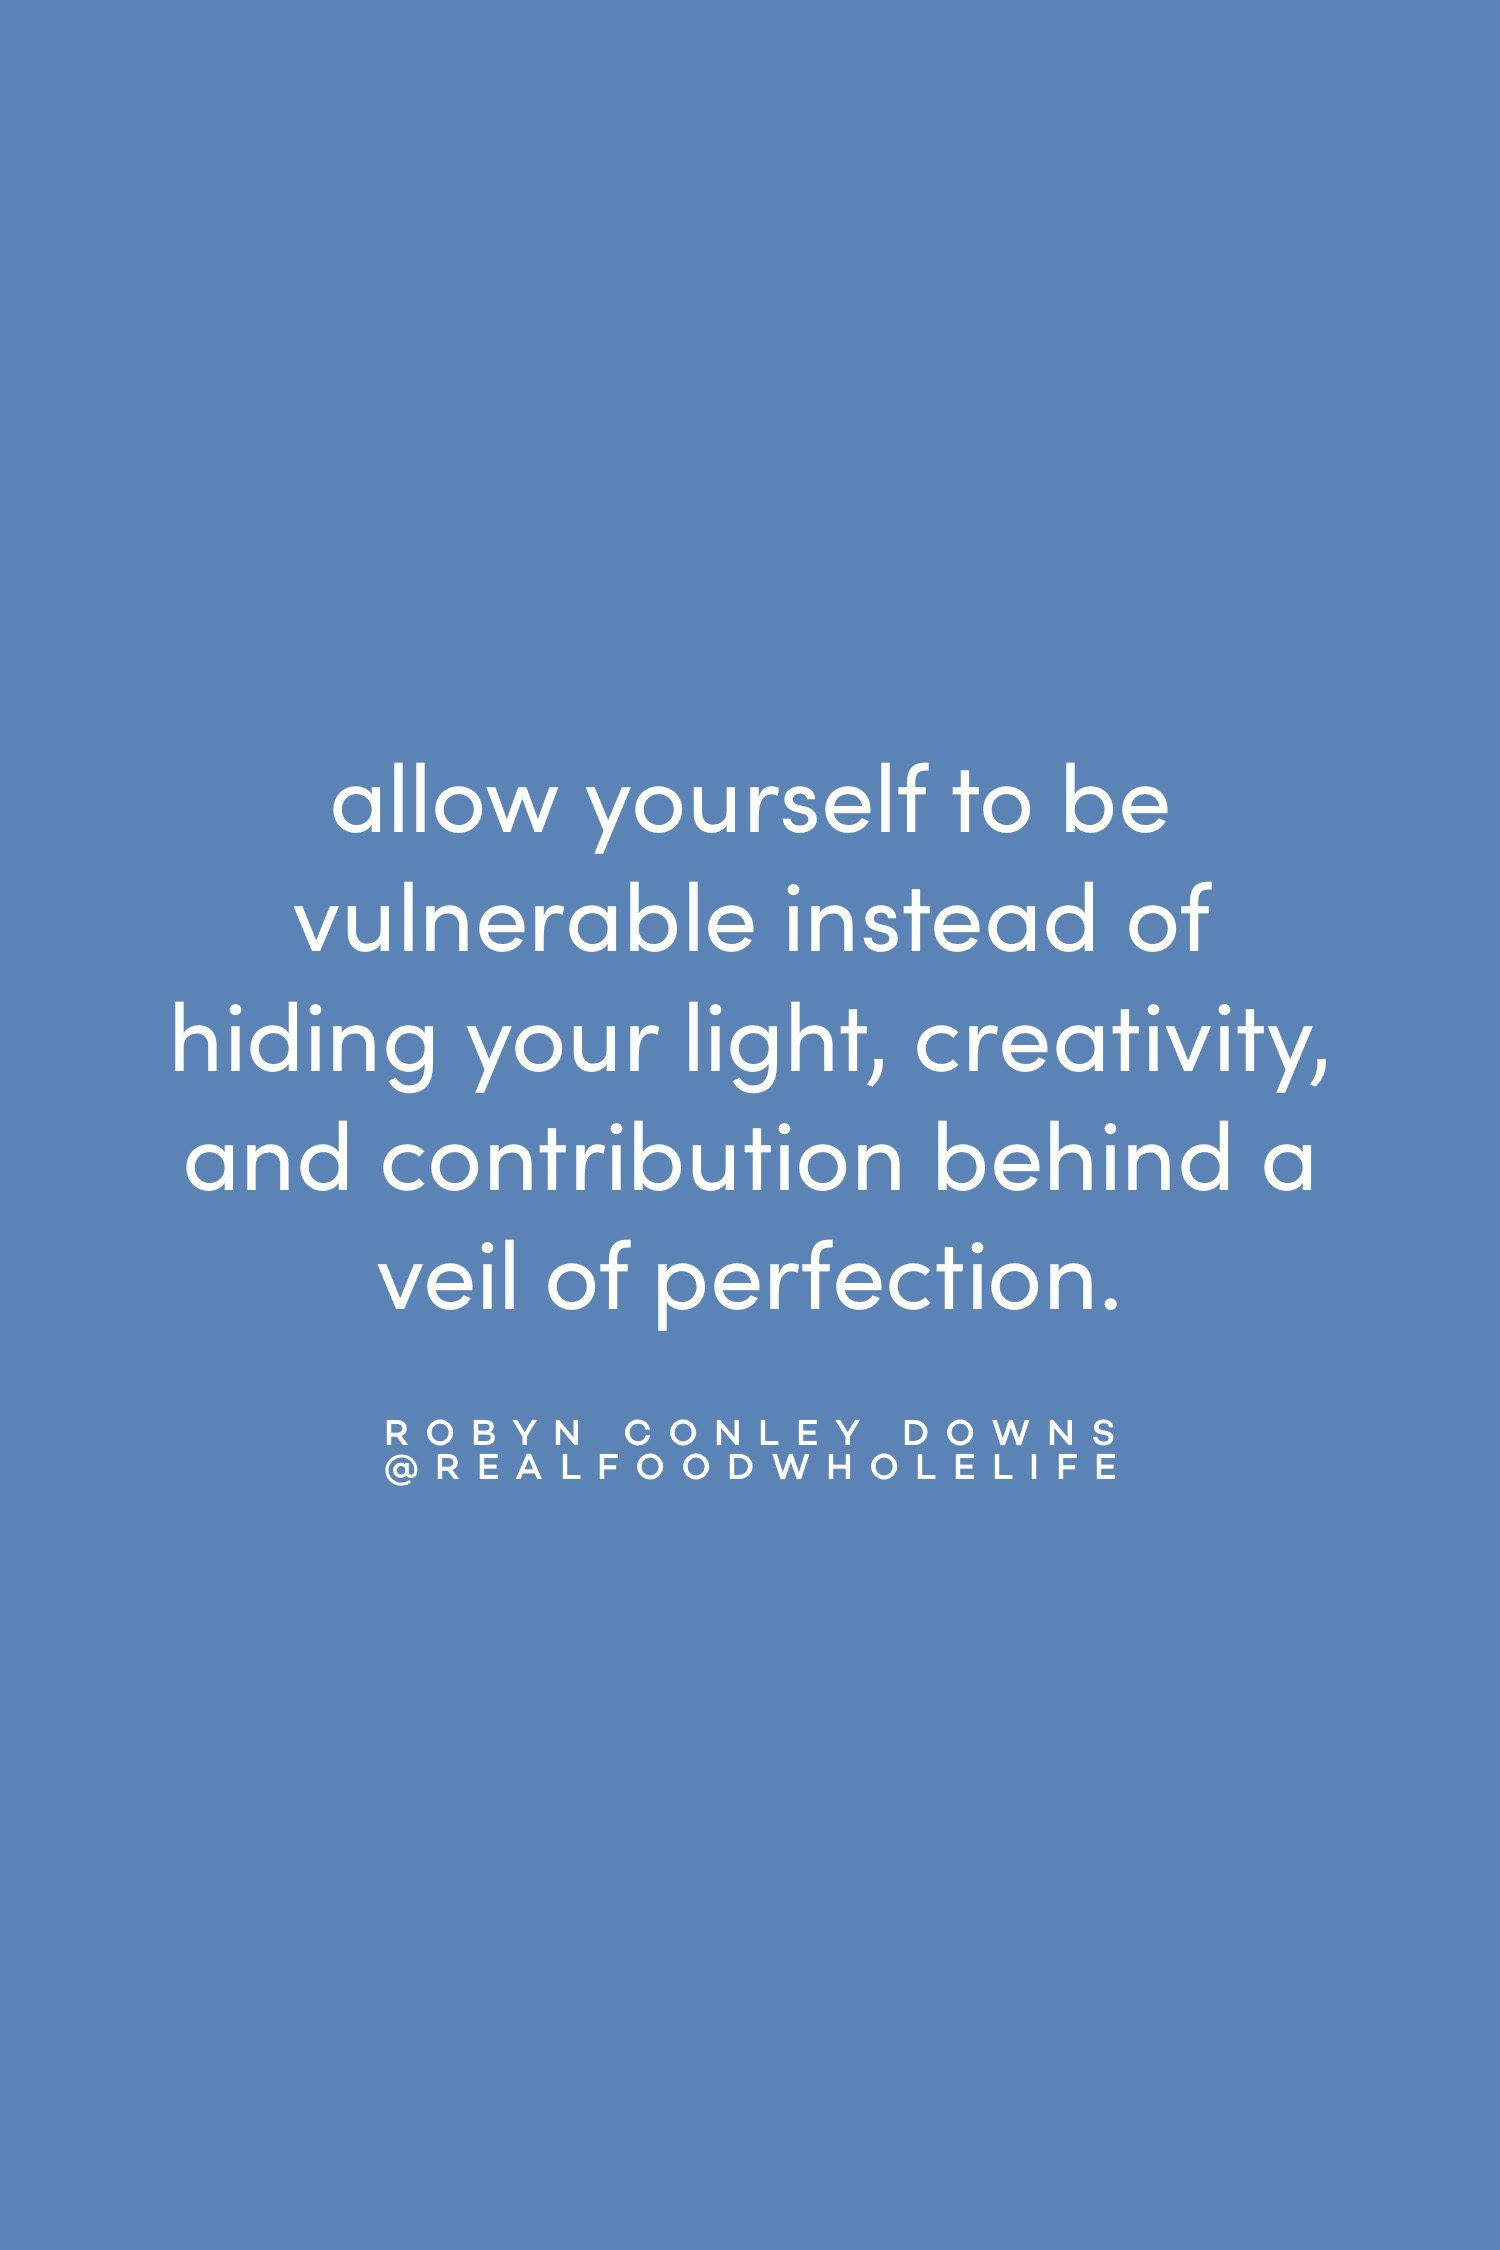 Quote on being vulnerable by Robyn Conley Downs on the Feel Good Effect Podcast #realfoodwholelife #feelgoodeffect #motivationalquote #positivityquote #inspirationalquote #selfcompassionquote #wellbeingquote #selfacceptancequote #vulnerabilityquote #resiliencequote #perfectionismquote